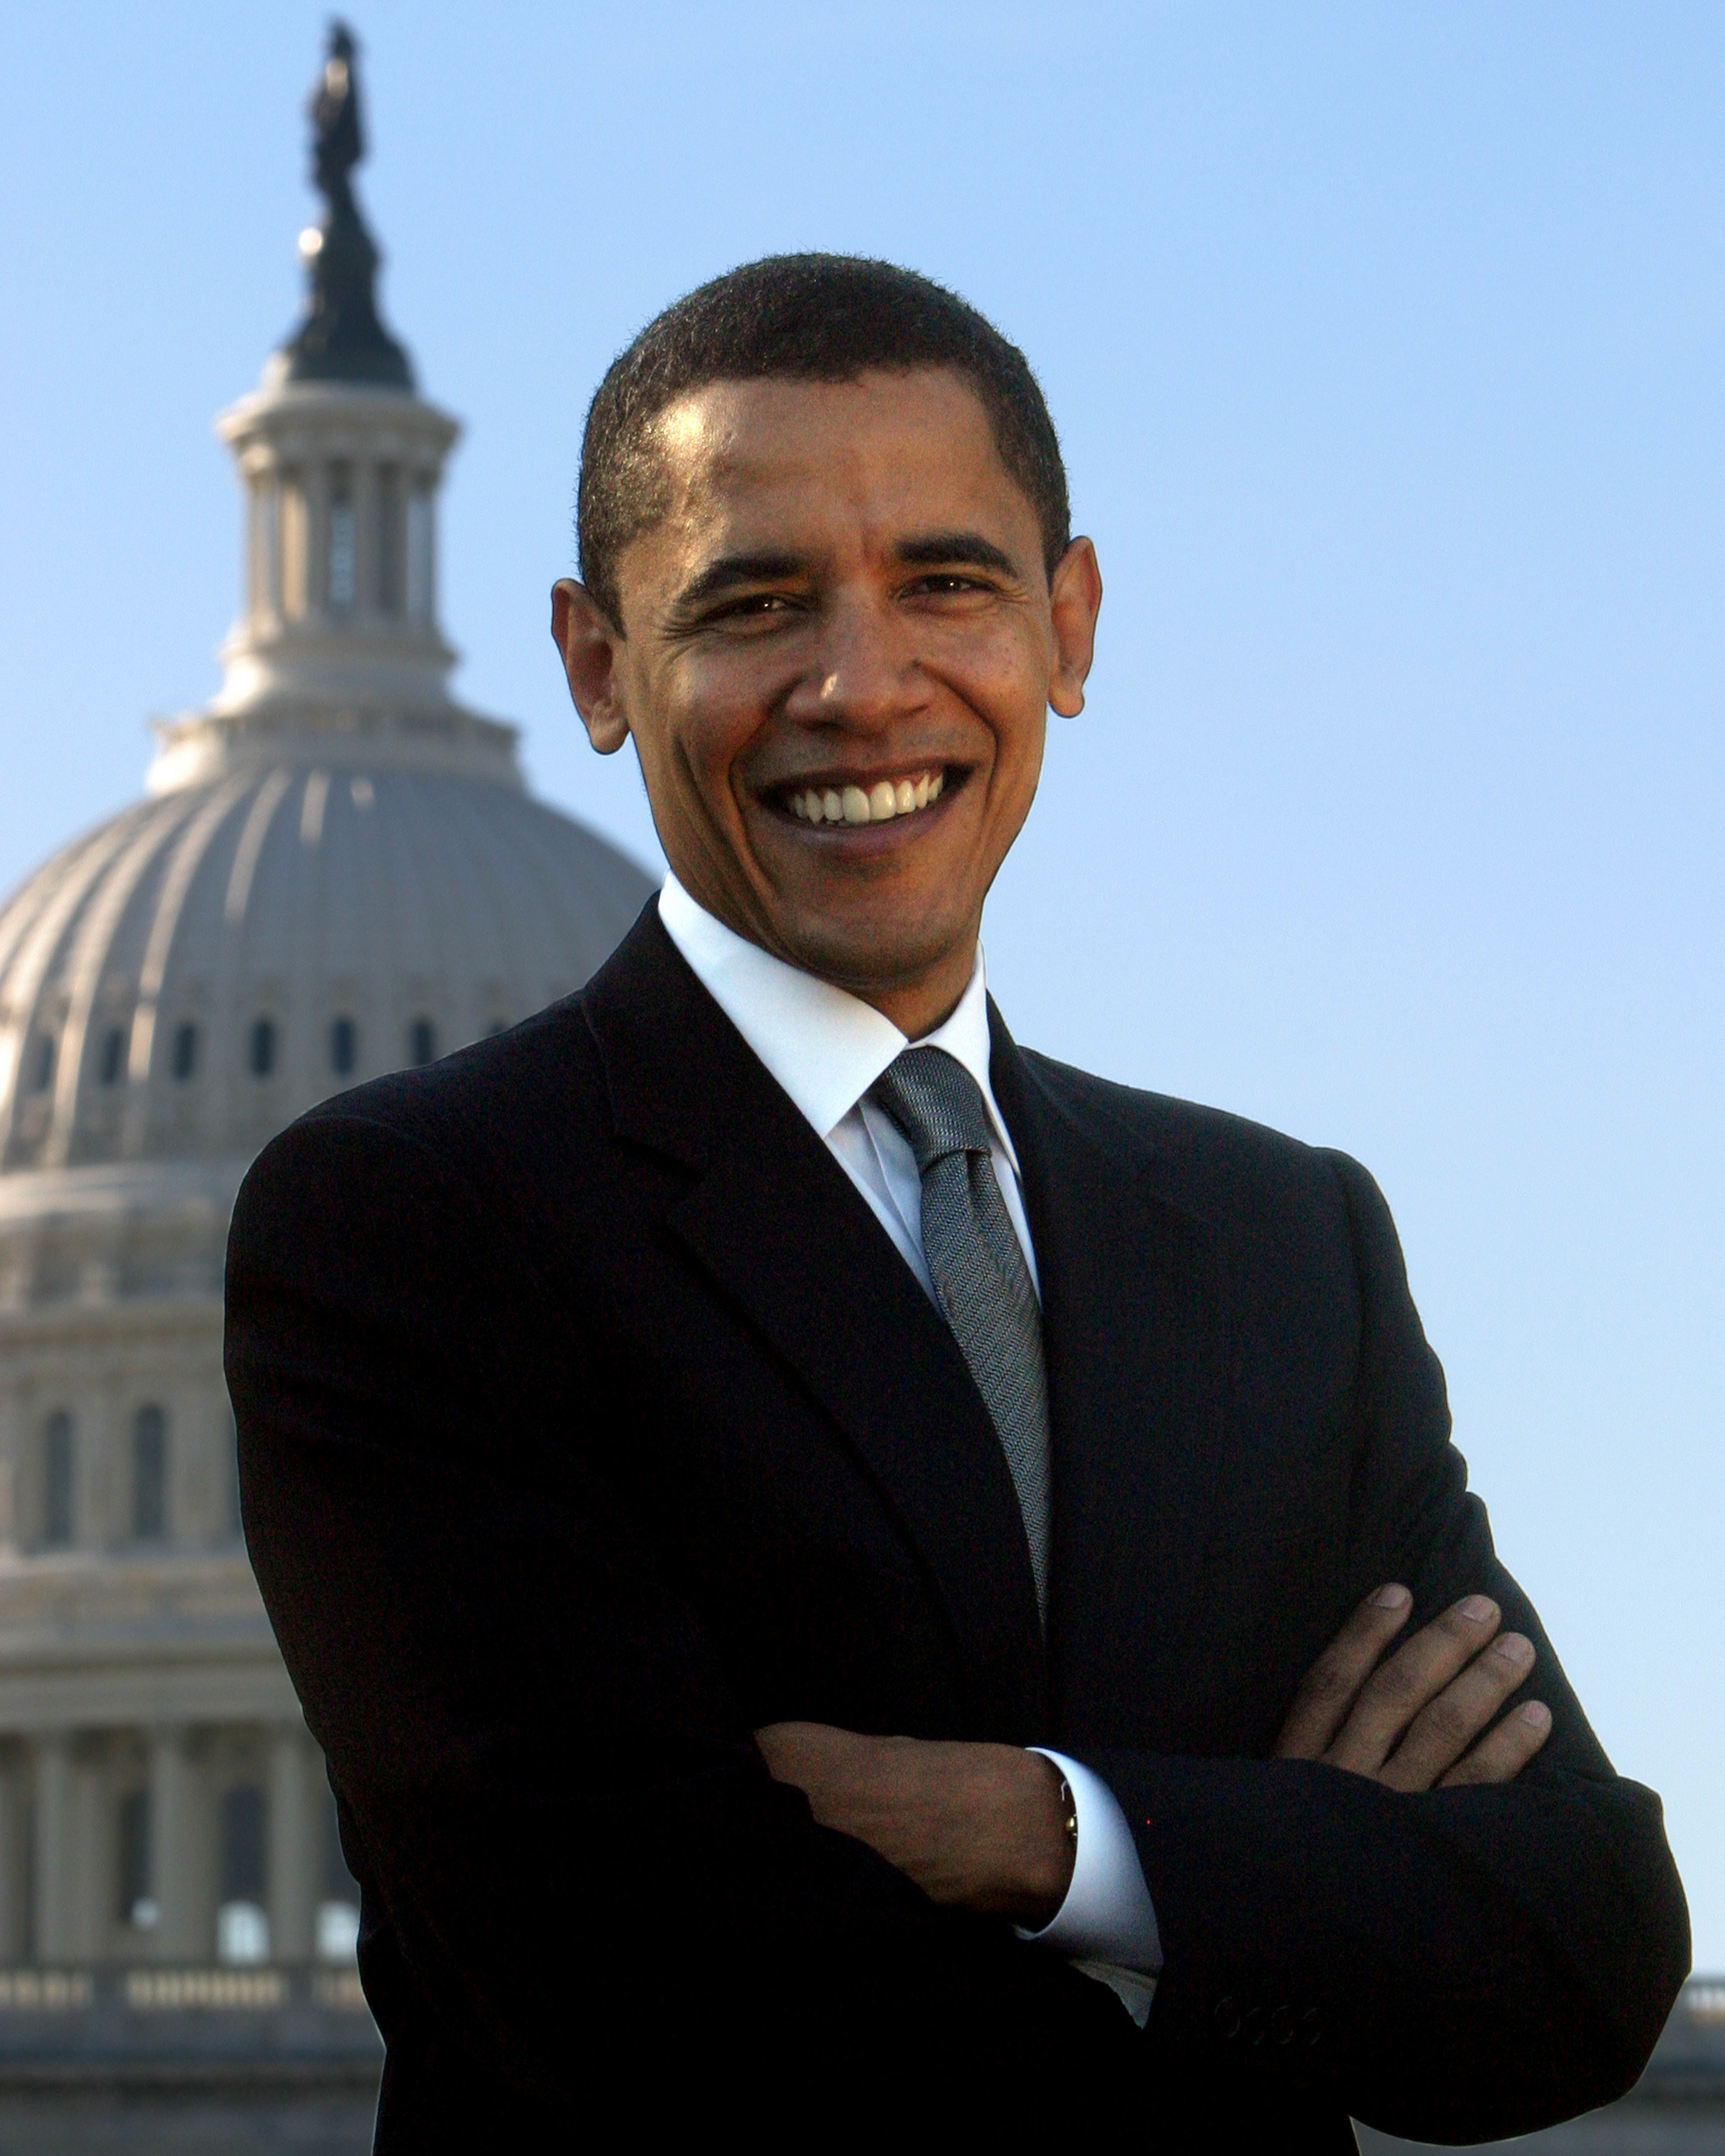 barack obama origins Barack obama was the 44th president of united states (2009-2017) he was a lawyer and us senator before becoming the first african-american president in american history.